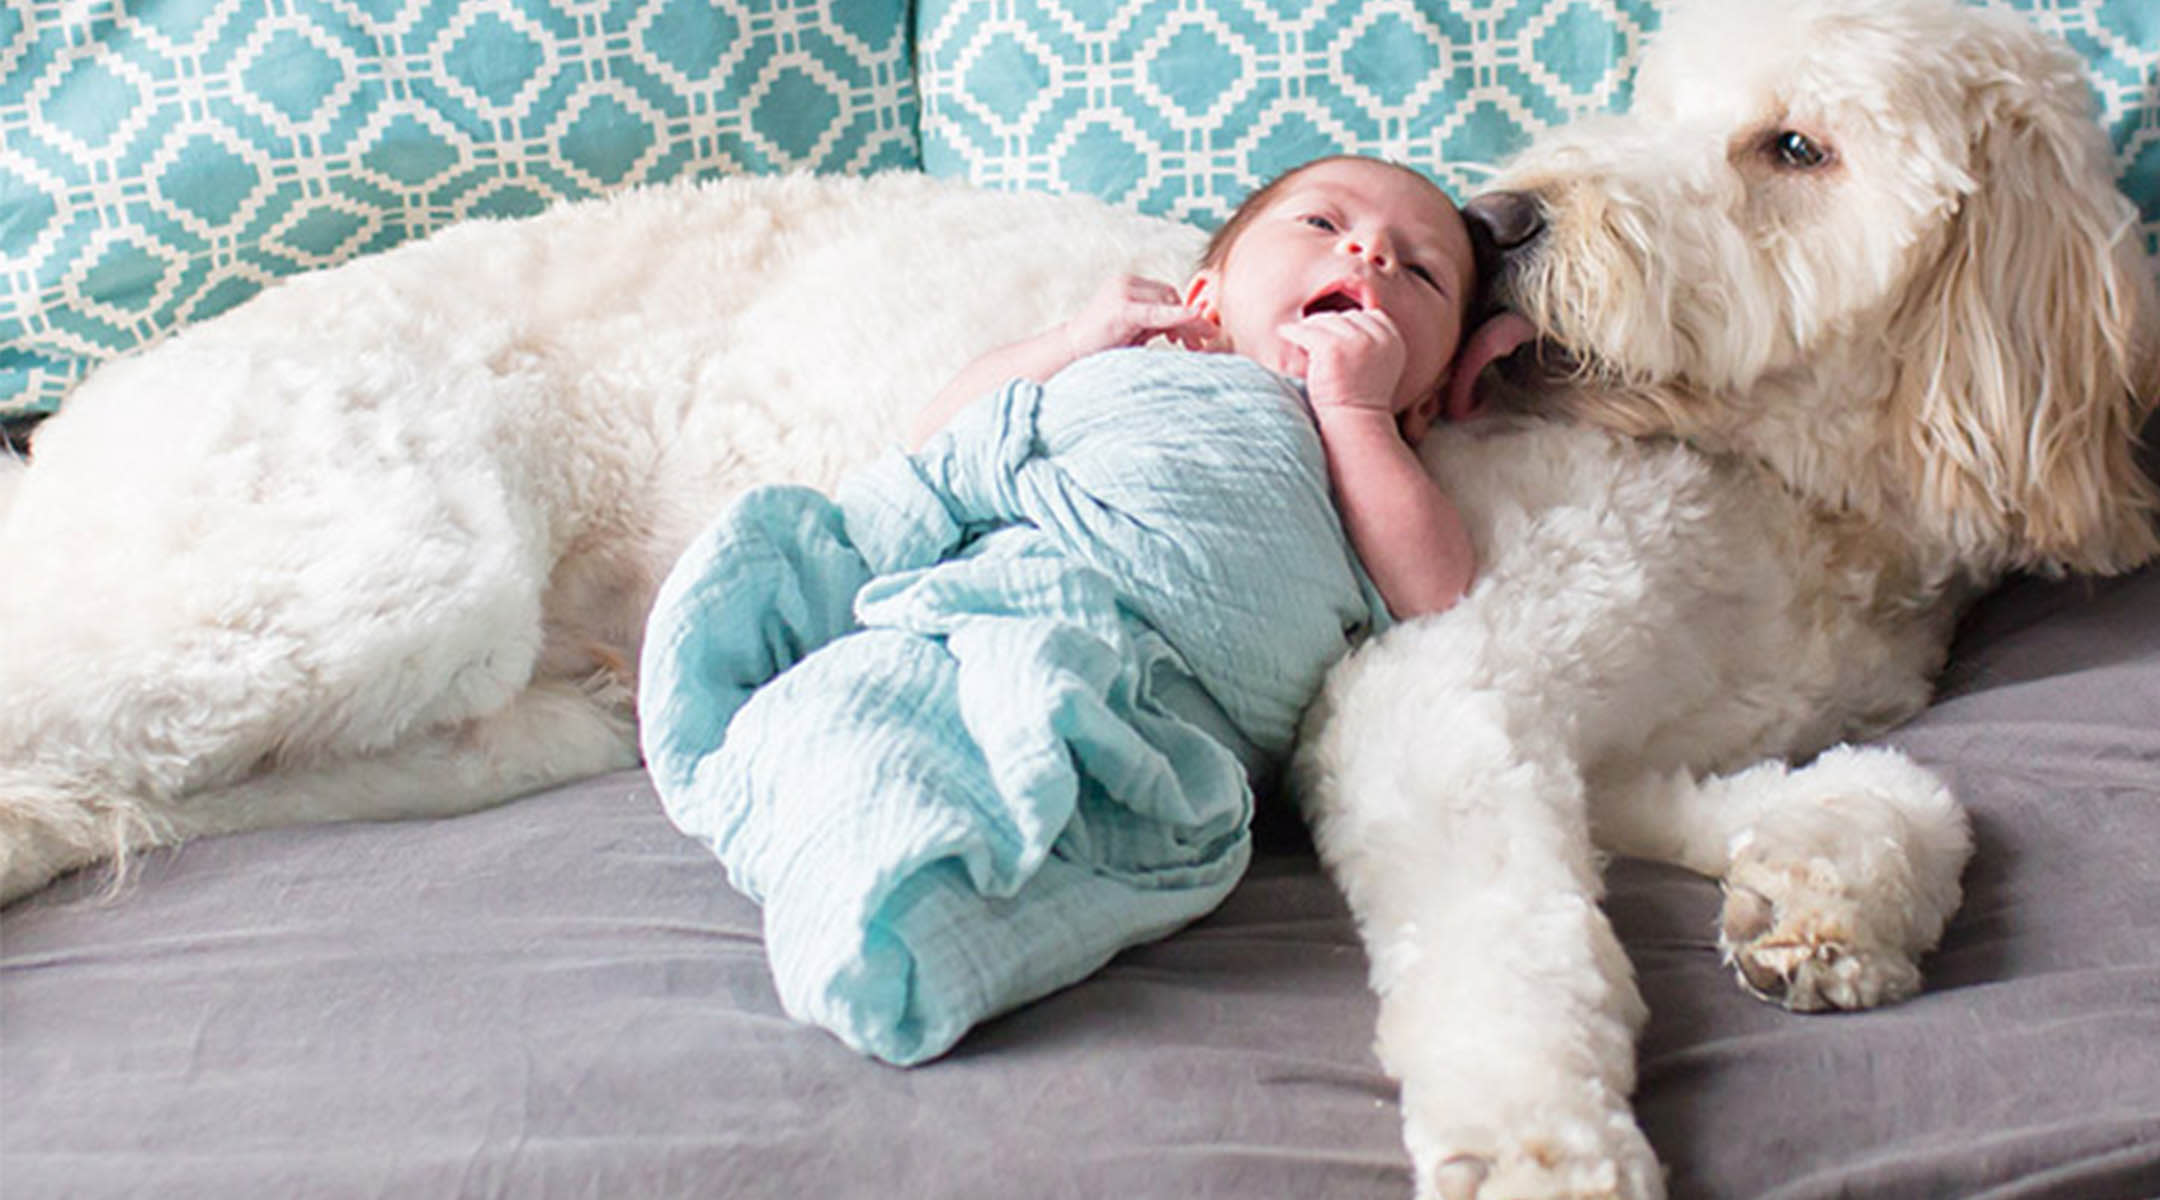 Adorable Photos of Dogs And Babies That'll Melt Your Heart